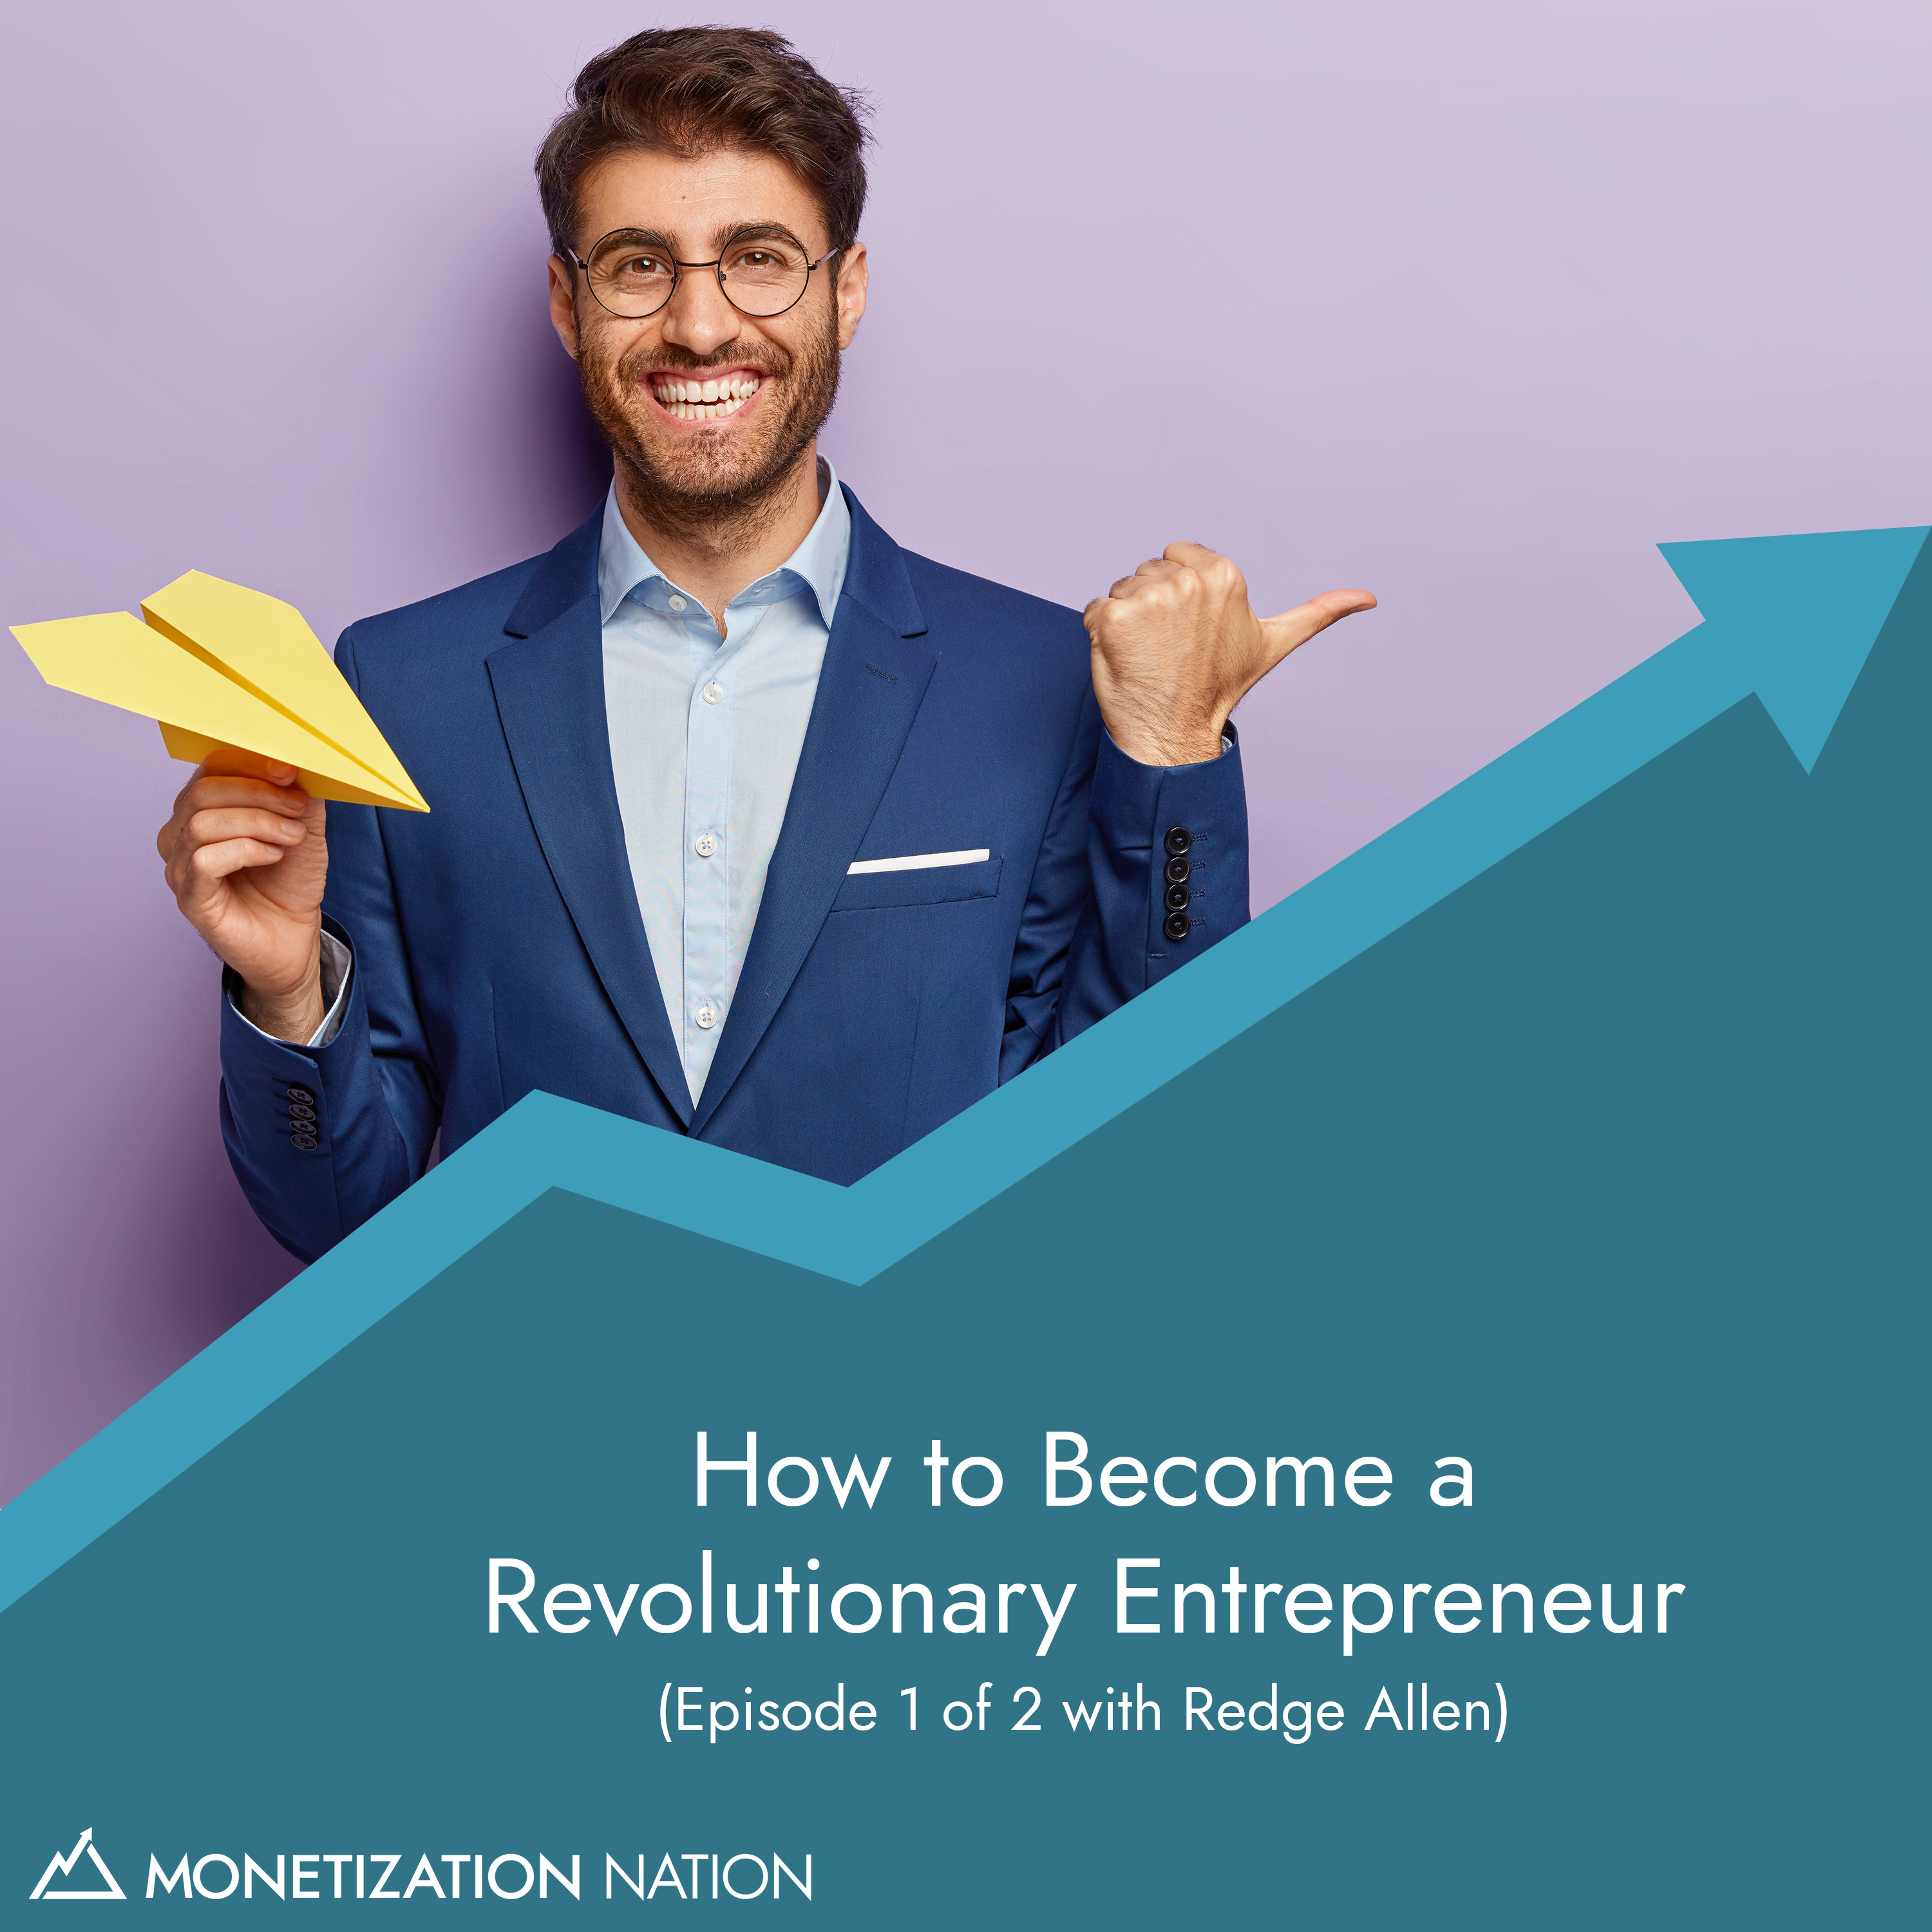 71. How to Become a Revolutionary Entrepreneur (Episode 1 of 2 with Redge Allen)